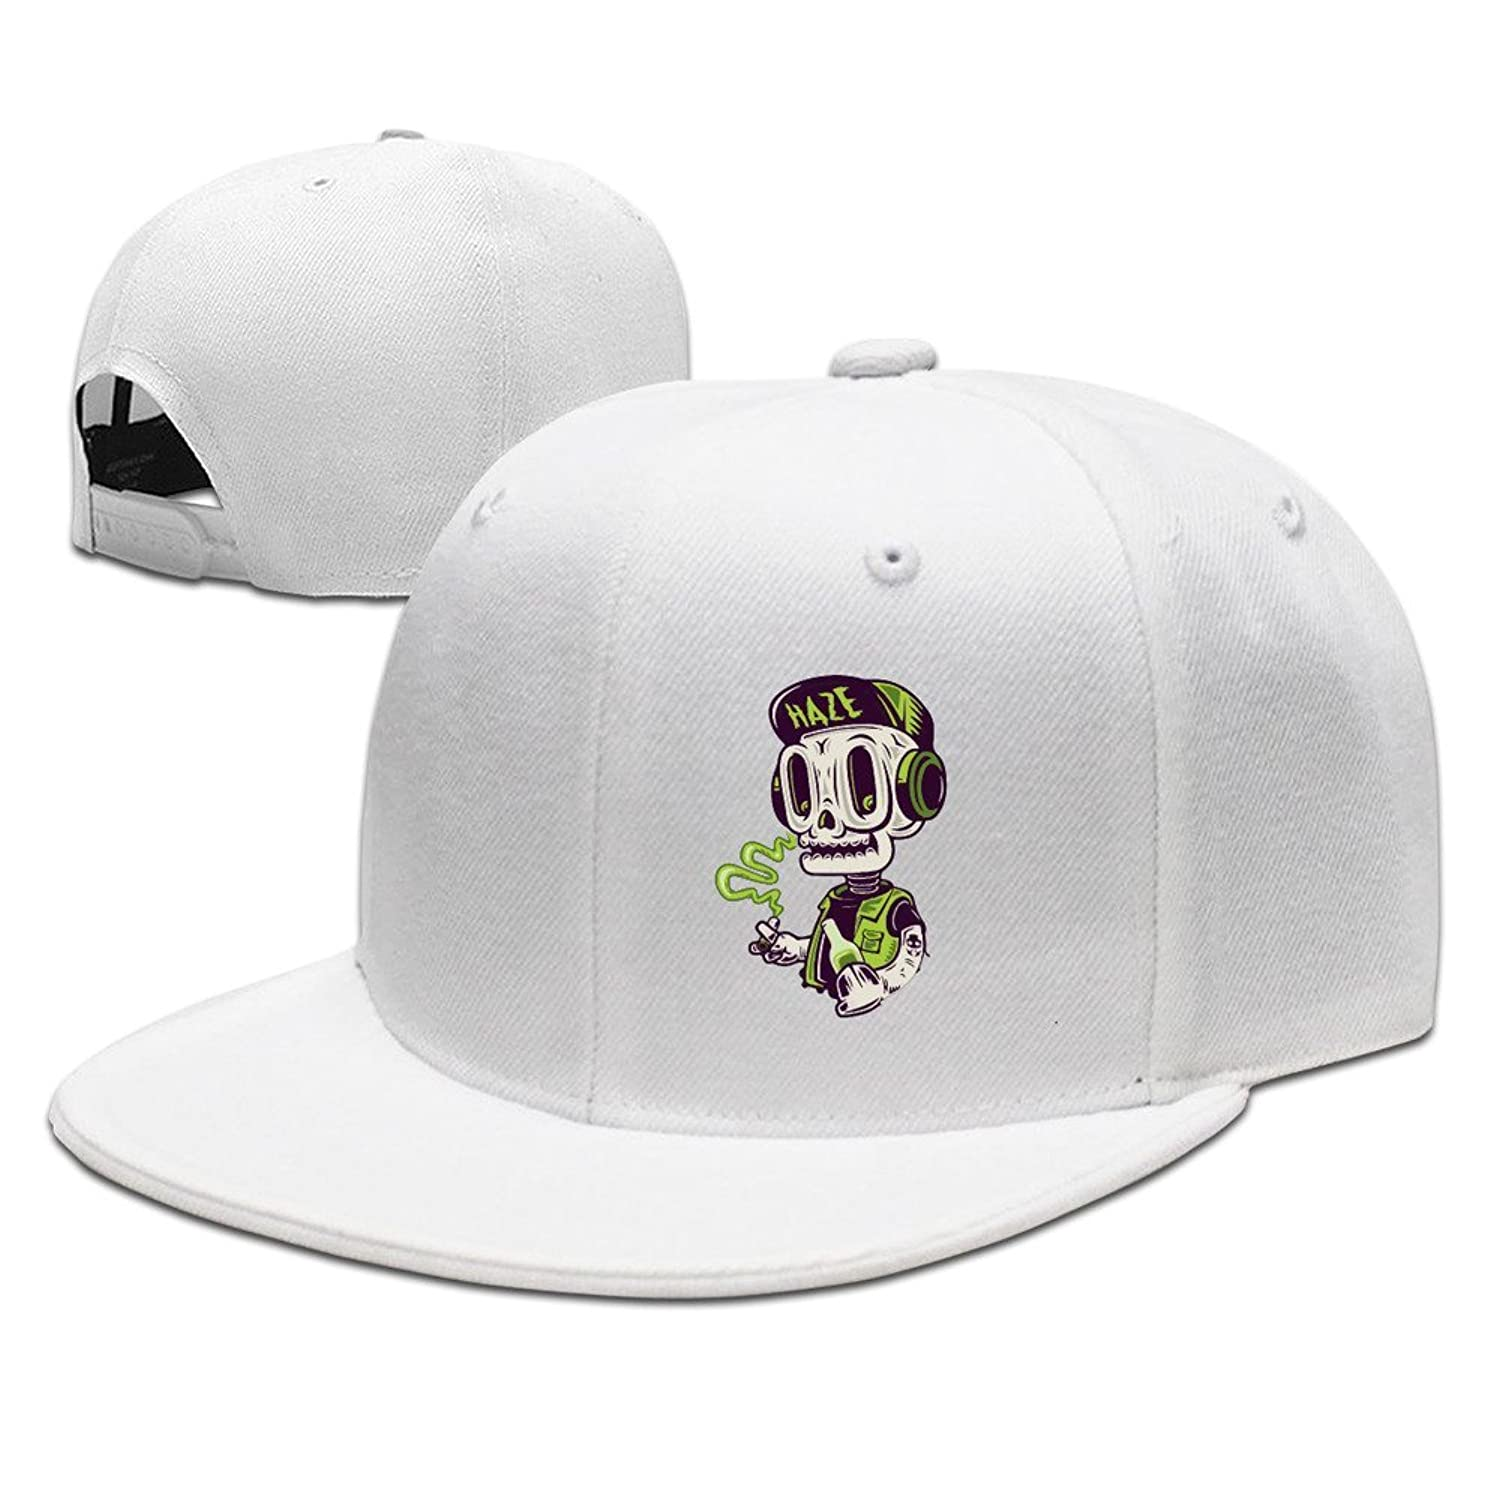 HNN Unisex Smoking Skull Flat Baseball Caps Hats